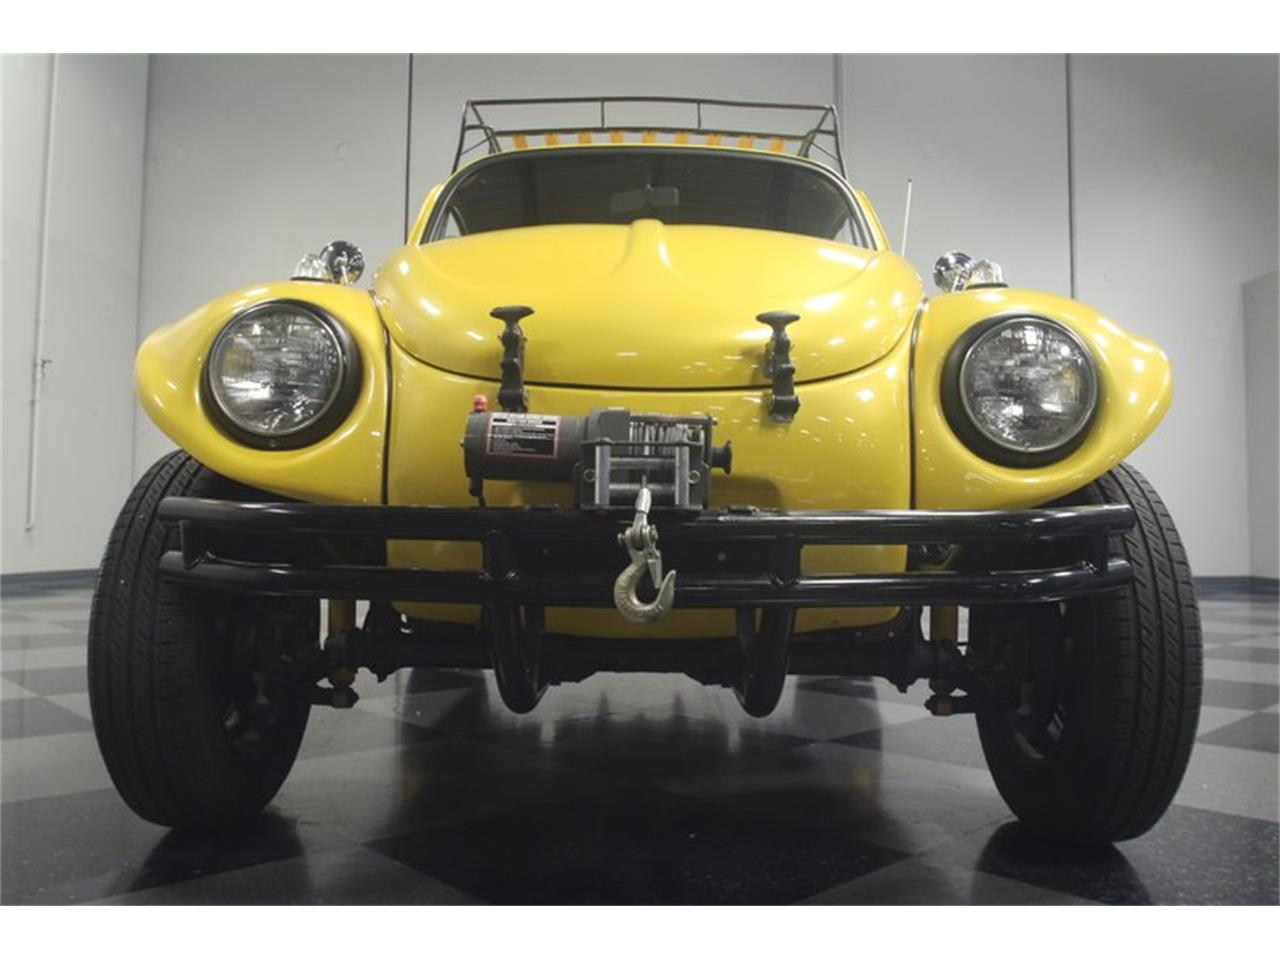 Large Picture of Classic '69 Volkswagen Baja Bug - $14,995.00 - N8PC